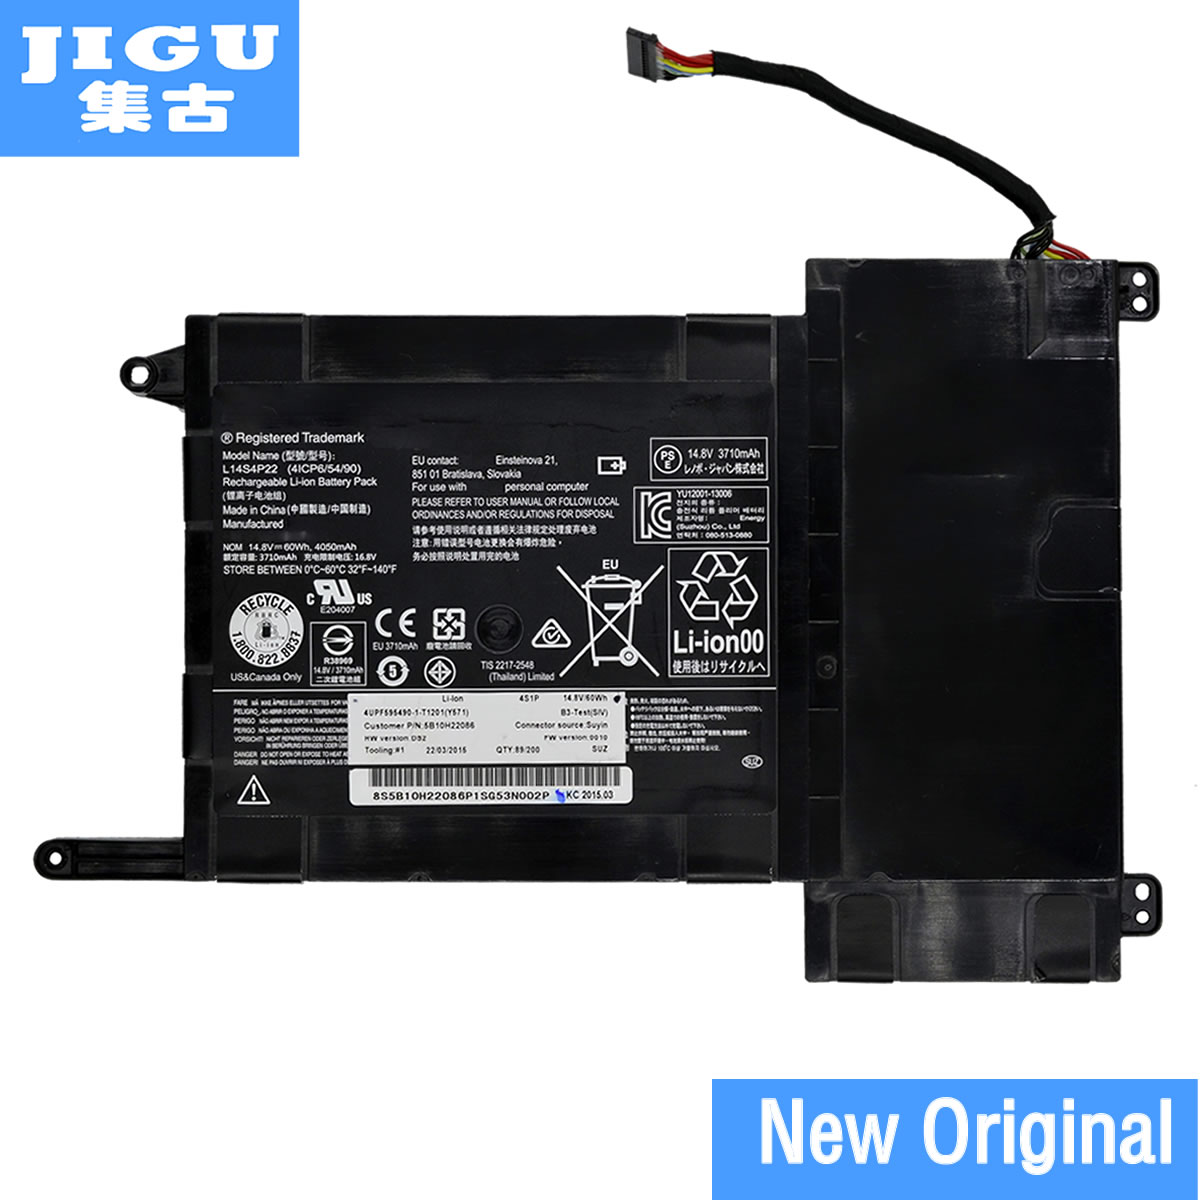 JIGU laptop battery L14M4P23 FOR LENOVO for IdeaPad Y700 Y700 Touch-15ISK for hasee GX9-SP7 PLUS new for lenovo ideapad 700 15isk 700 15 us black laptop keyboard no backlight